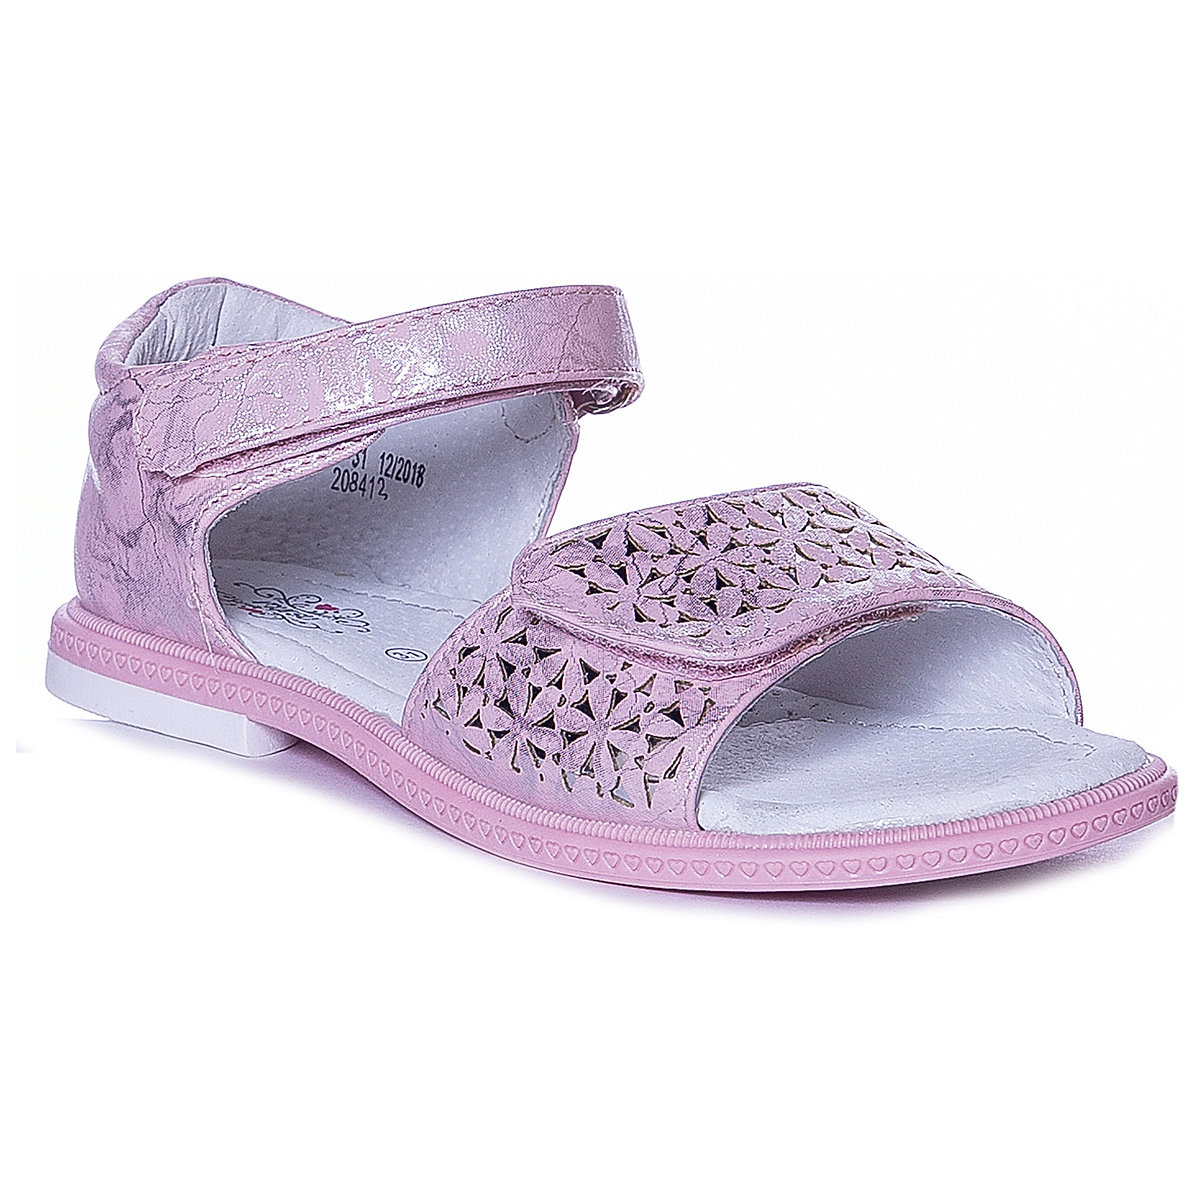 MURSU Sandals 10611943 children's shoes comfortable and light girls and boys sandals adidas s74649 sports and entertainment for boys